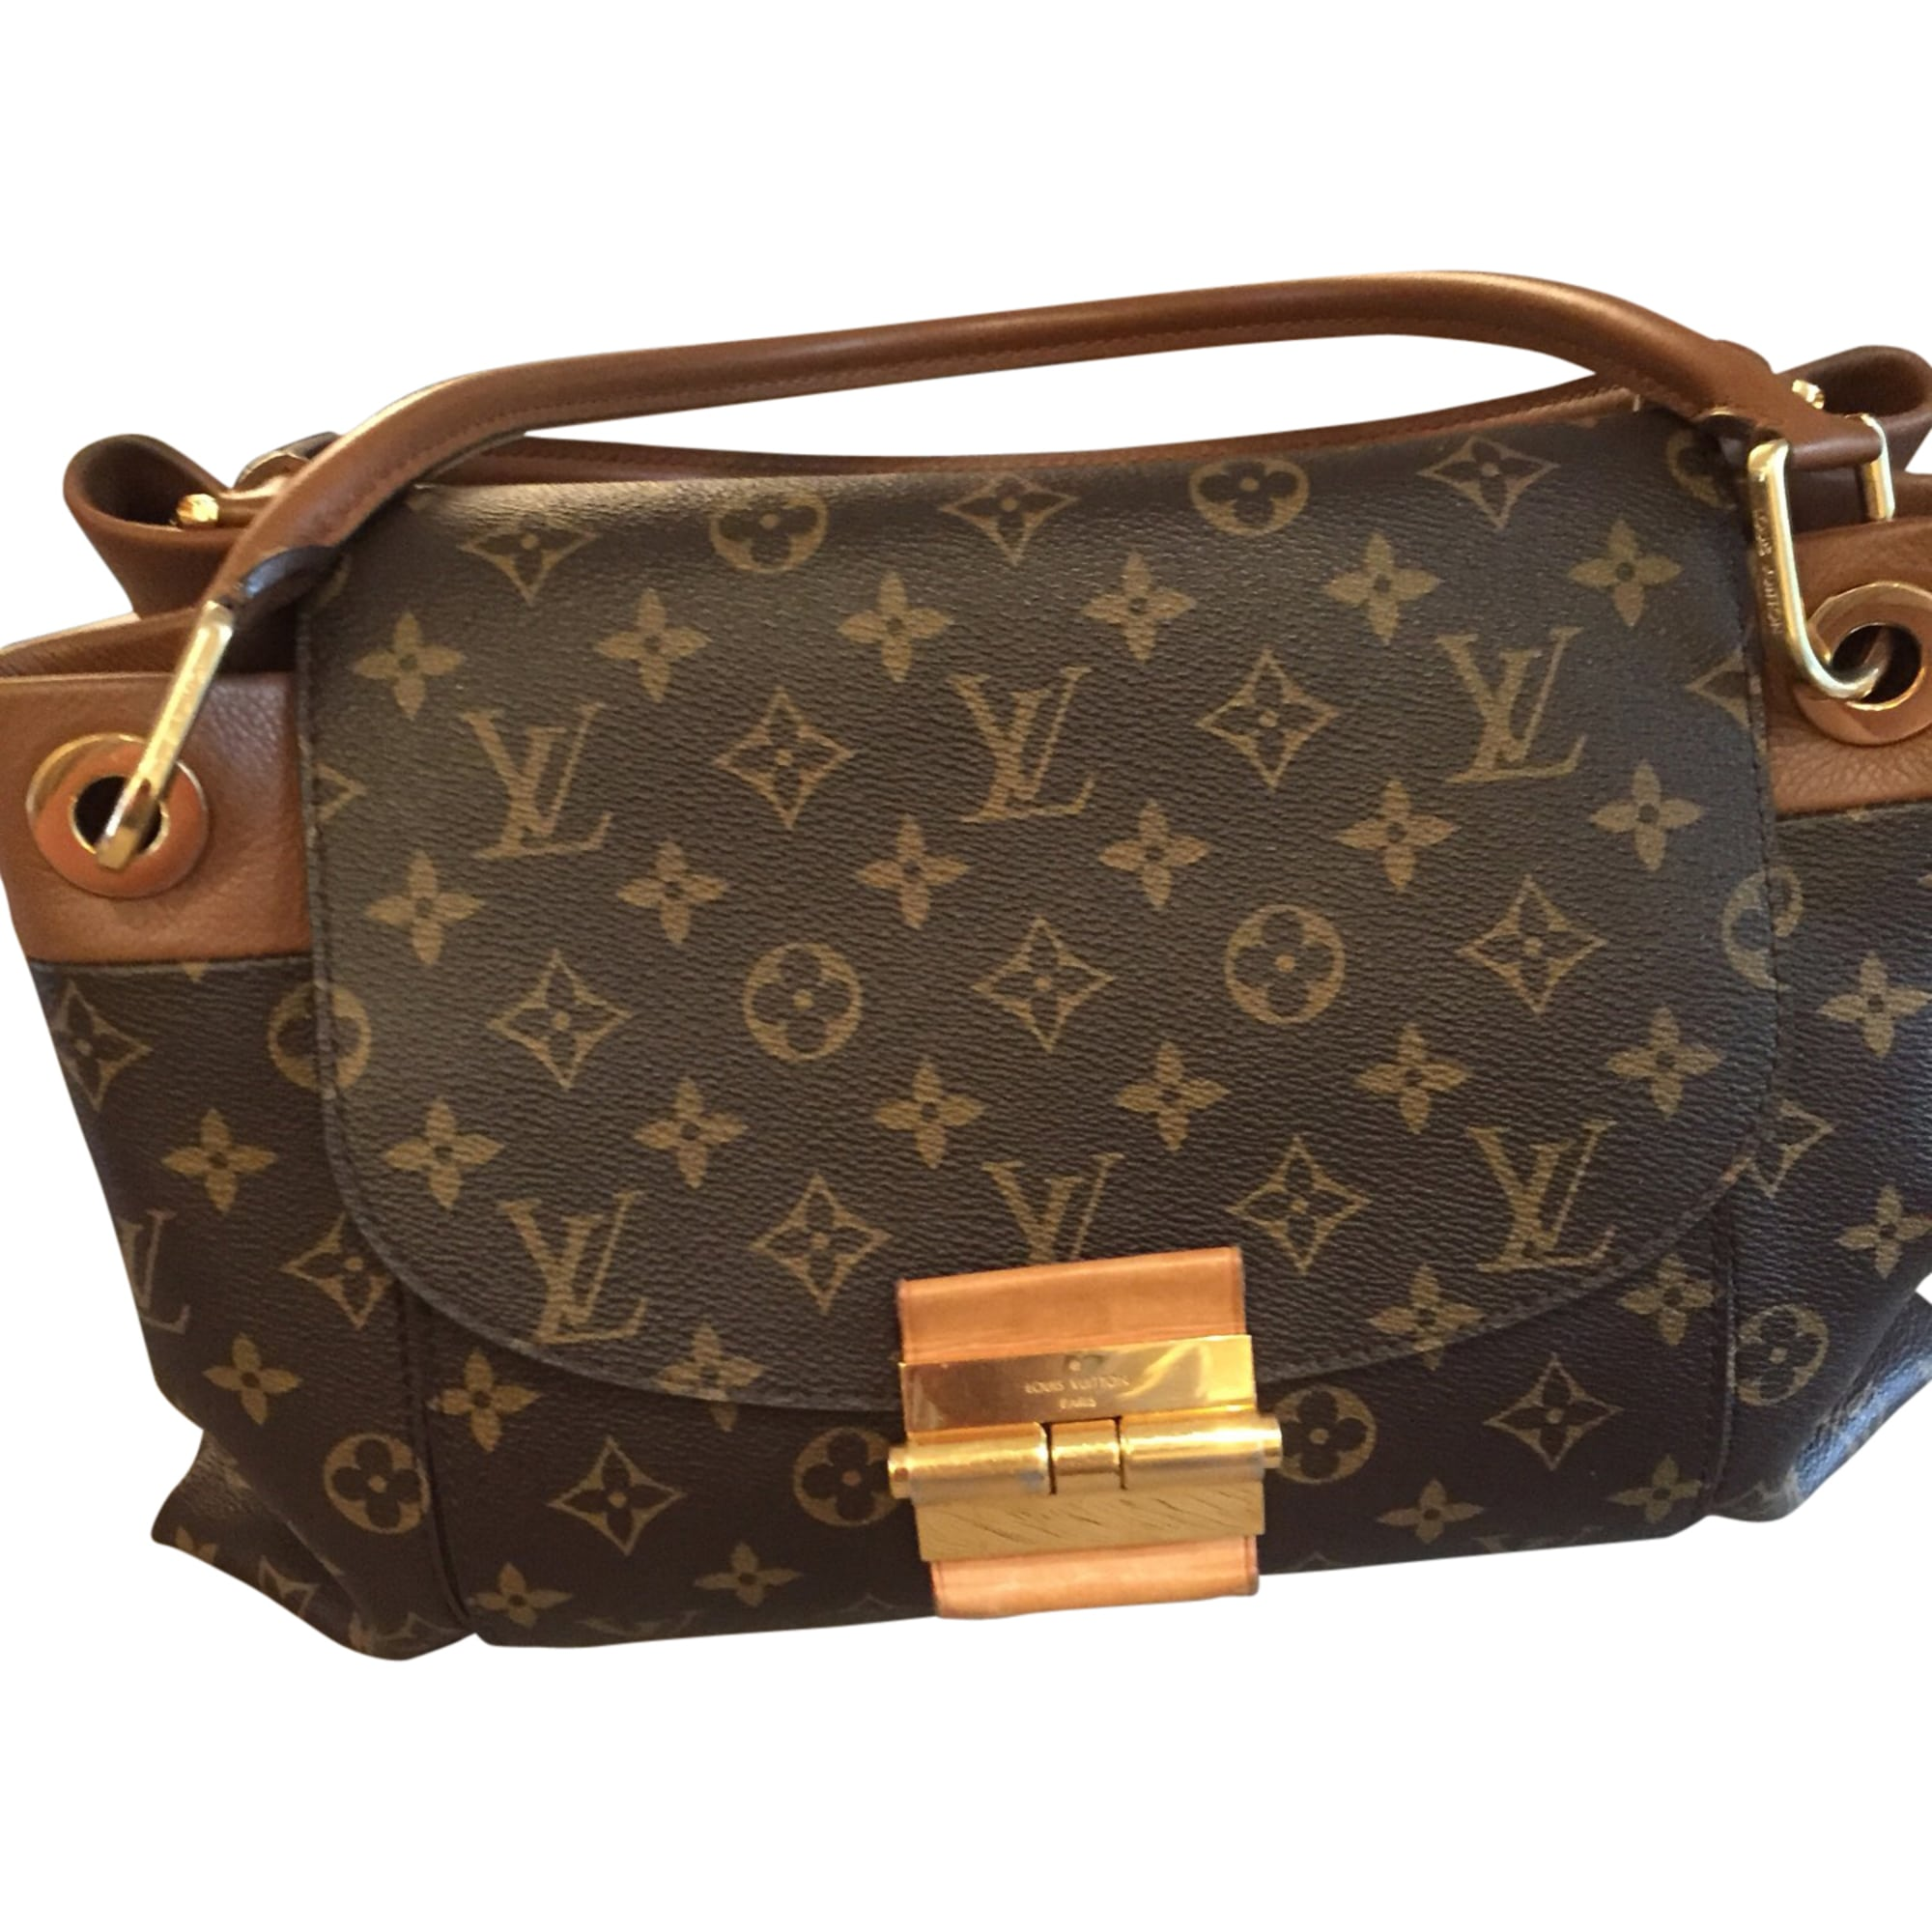 3810bb907f62 Sac à main en tissu LOUIS VUITTON marron - 8559879